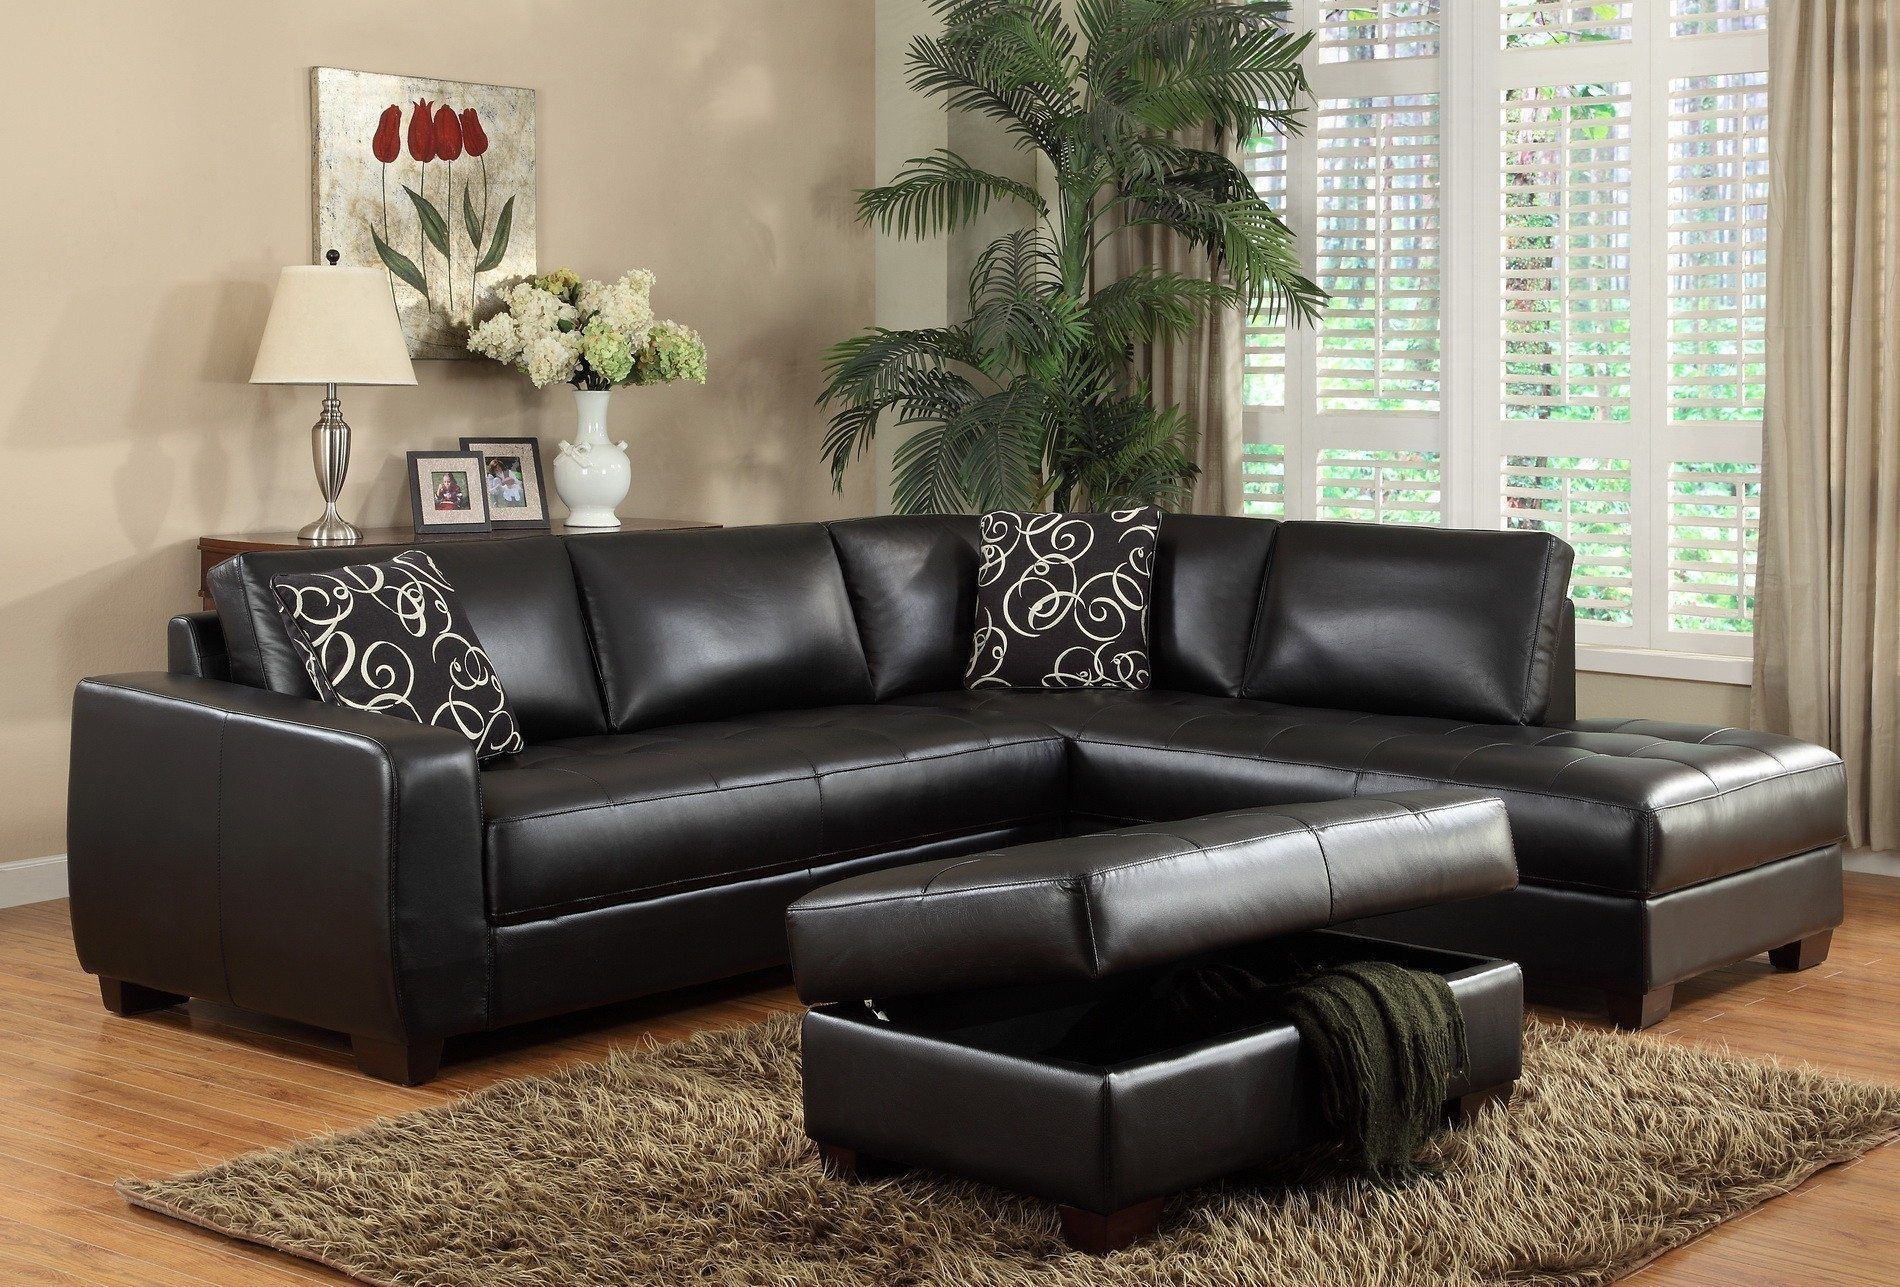 Leder Sectional Schlafsofa Mit Chaiselongue Sessel Diese